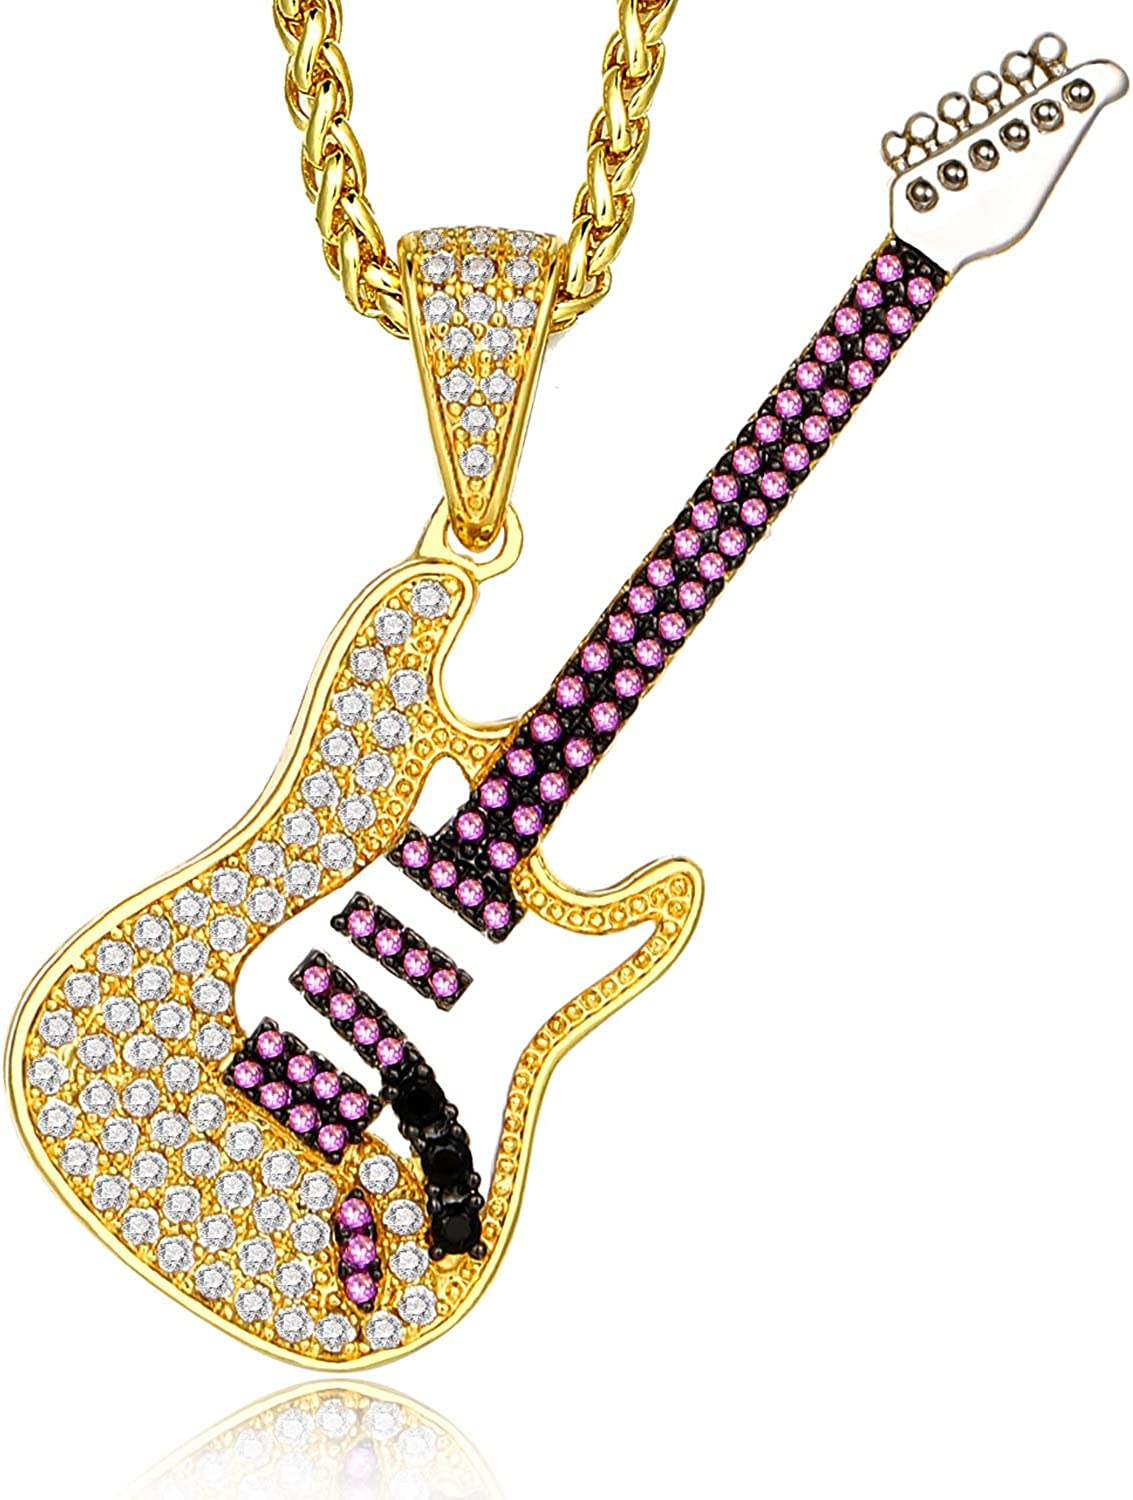 14k Yellow Gold Musical Series Electric Guitar Pendant